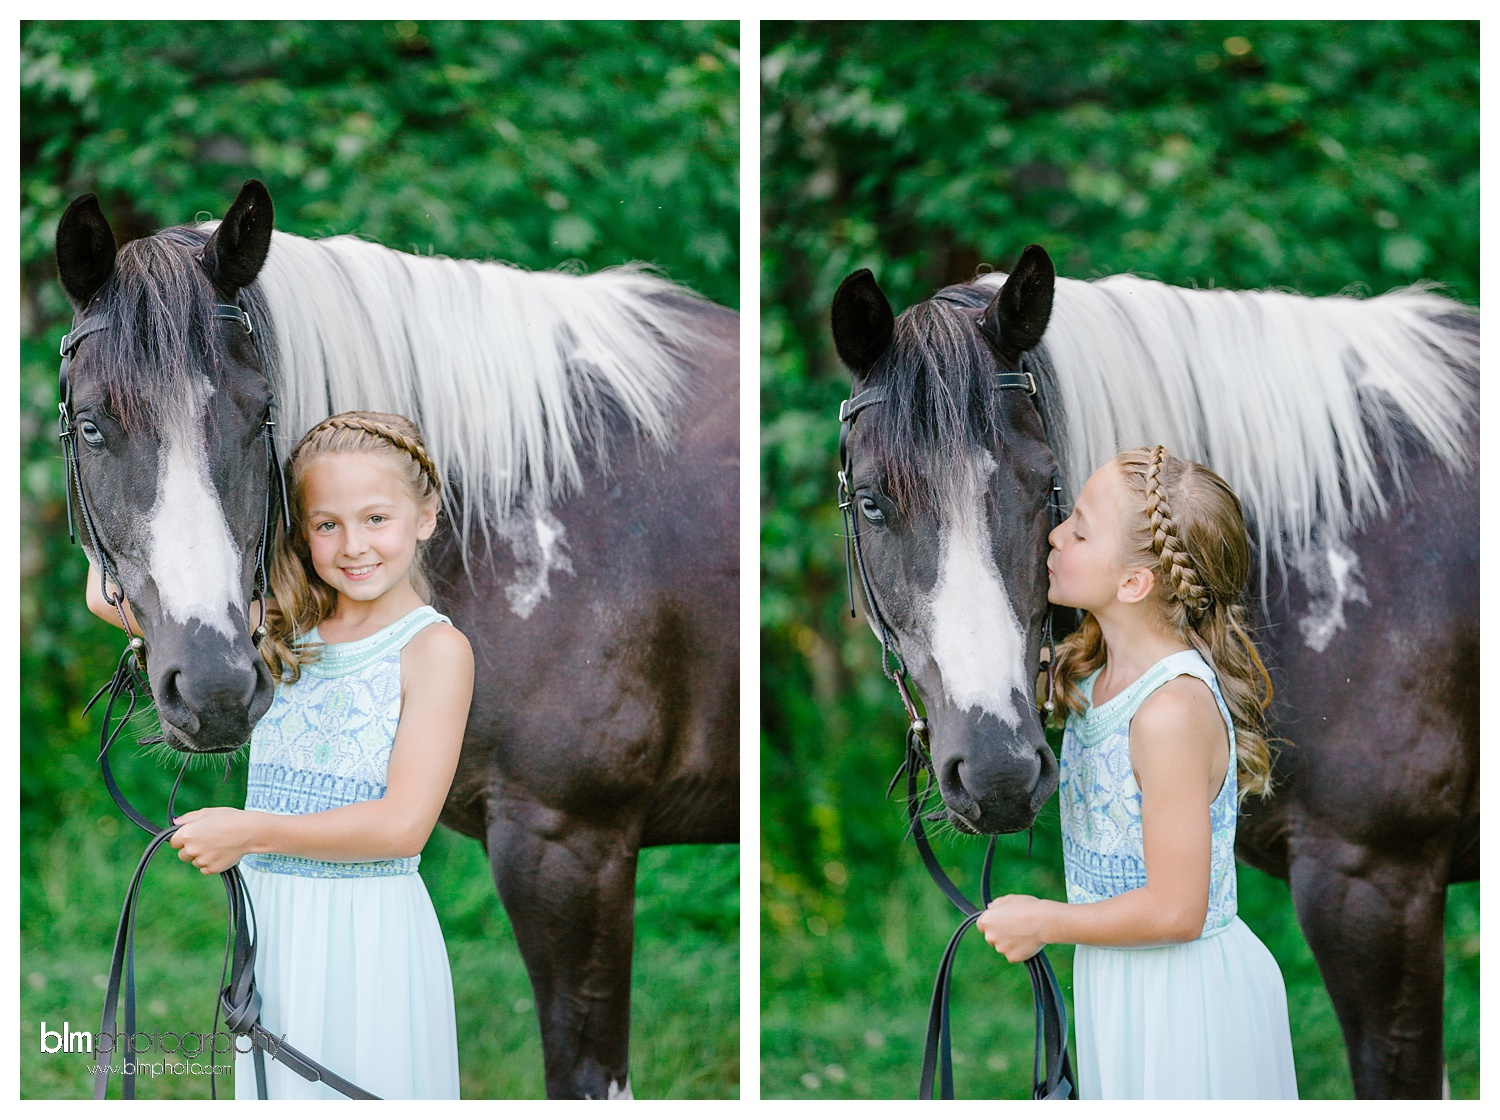 BLM,Brianna Morrissey,Brie Morrissey,Candid,Cold Springs Farm,Family Photography,Family Portraits,Jul,July,Lifestyle,Lifestyle Family Photography,Natural Light,New Ipswich,New Ipswich Family photography,Outdoor Photography,Photo,Photographer,Photography,Saari Family,Shayla Saari,Shayla-Saari,www.blmphoto.com/contact,©BLM Photography 2017,